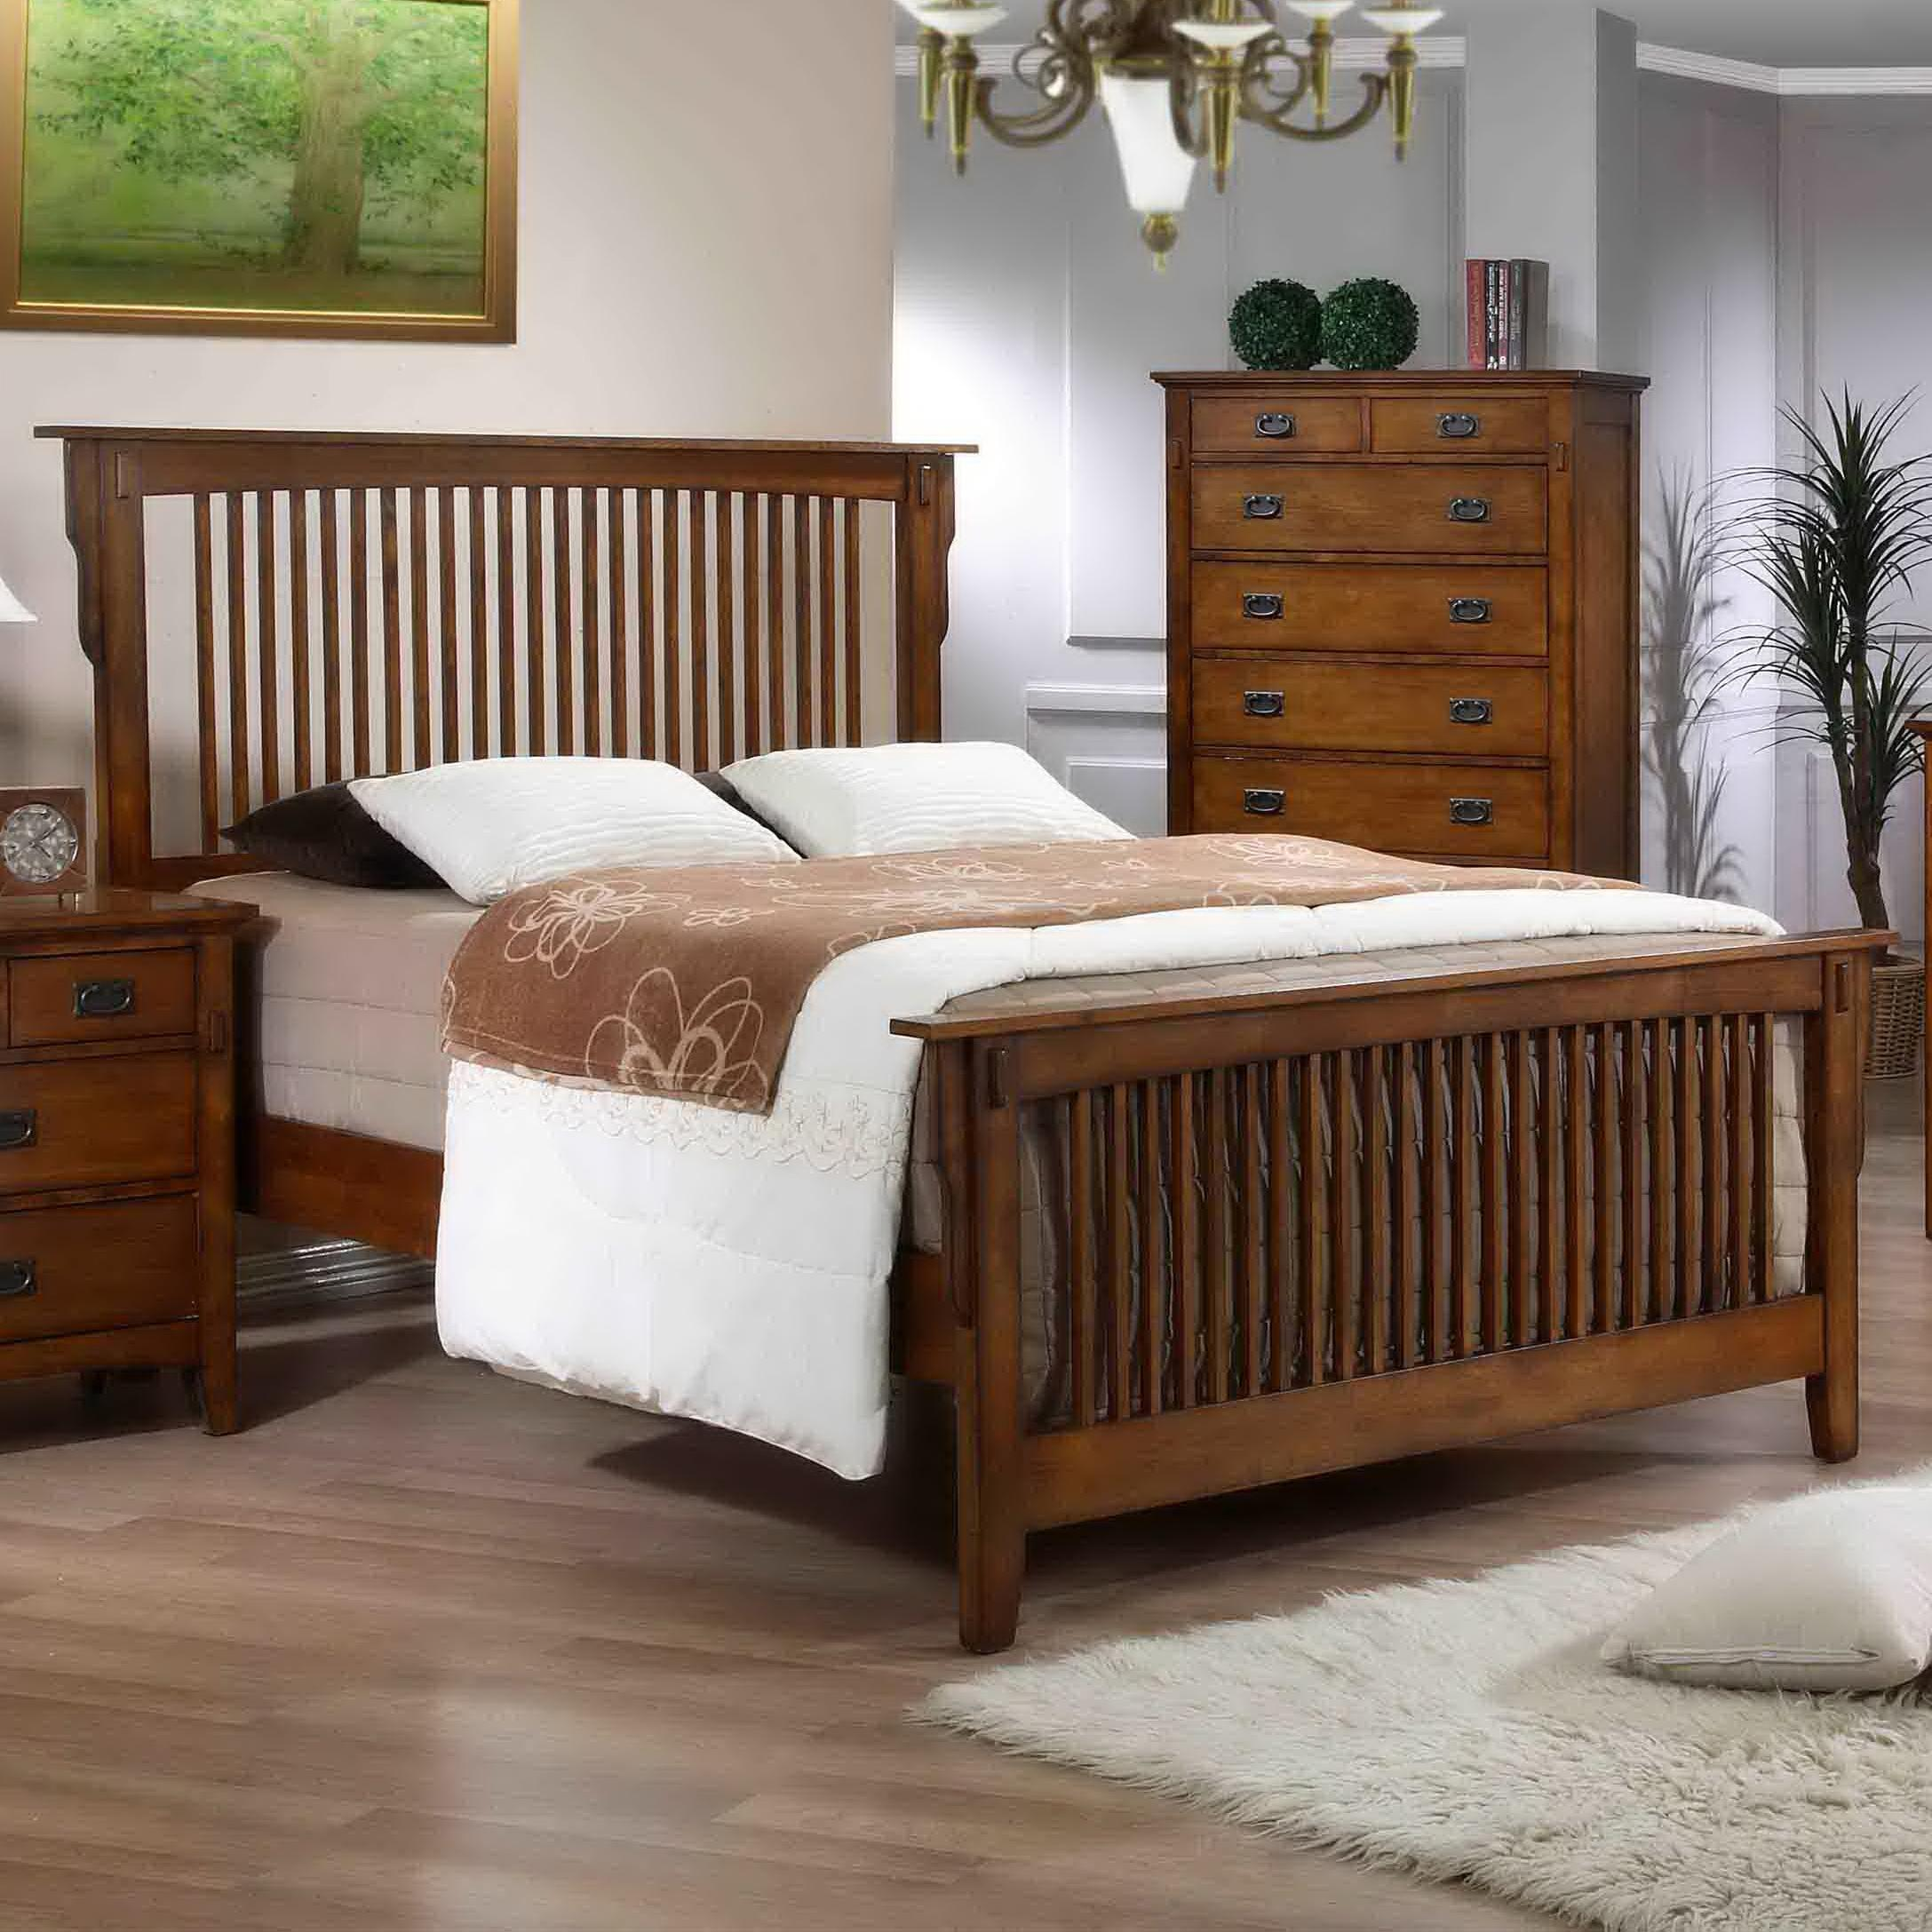 Elements International Trudy Tr750qb Qr Mission Style Queen Bed With Slat Headboard And